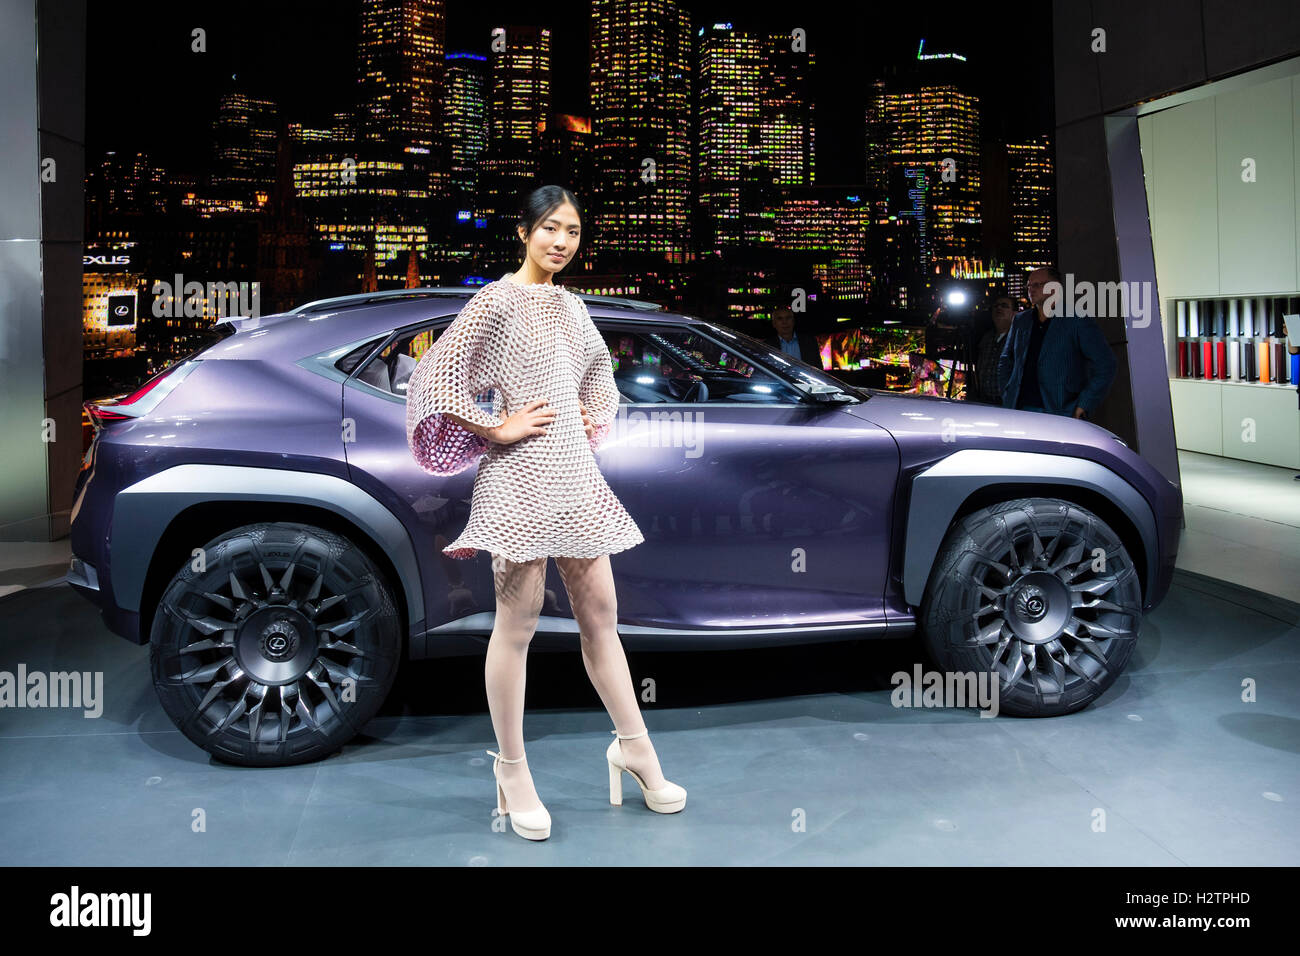 https://c8.alamy.com/comp/H2TPHD/lexus-ux-concept-crossover-vehicle-at-world-premiere-at-paris-motor-H2TPHD.jpg